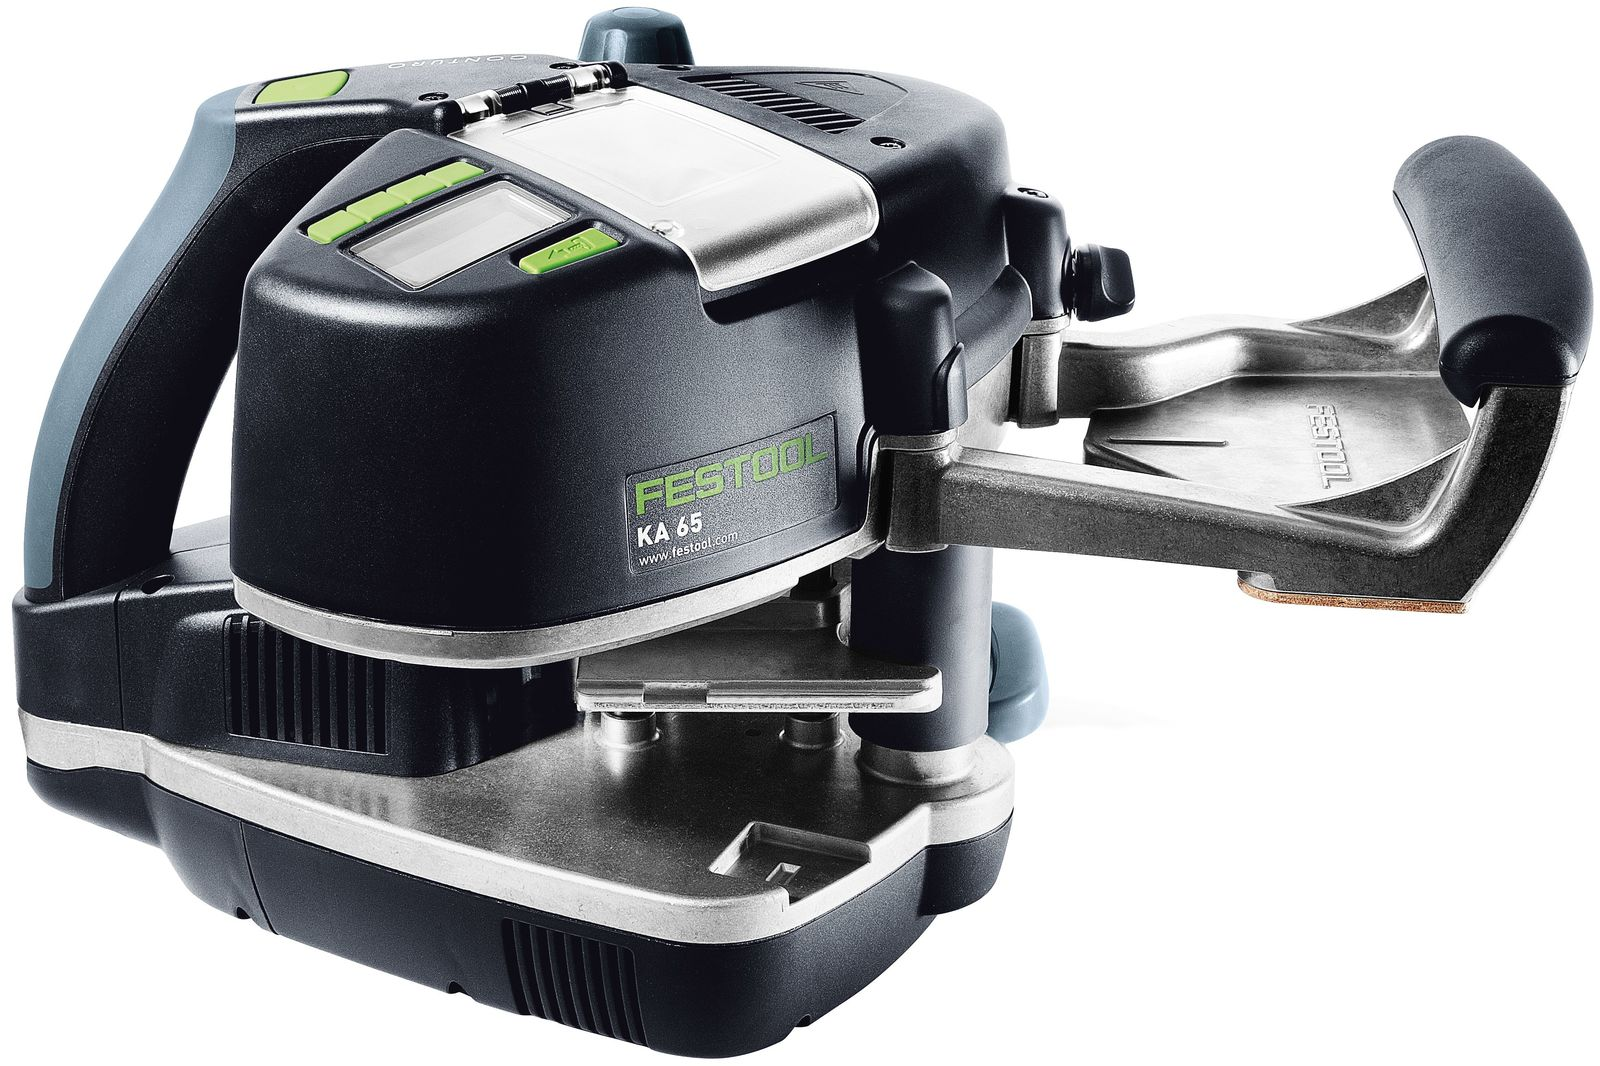 https://www.cesafonline.it/immagini_articoli/06-07-2017/bordatrice-ka-65-set-festool.jpg